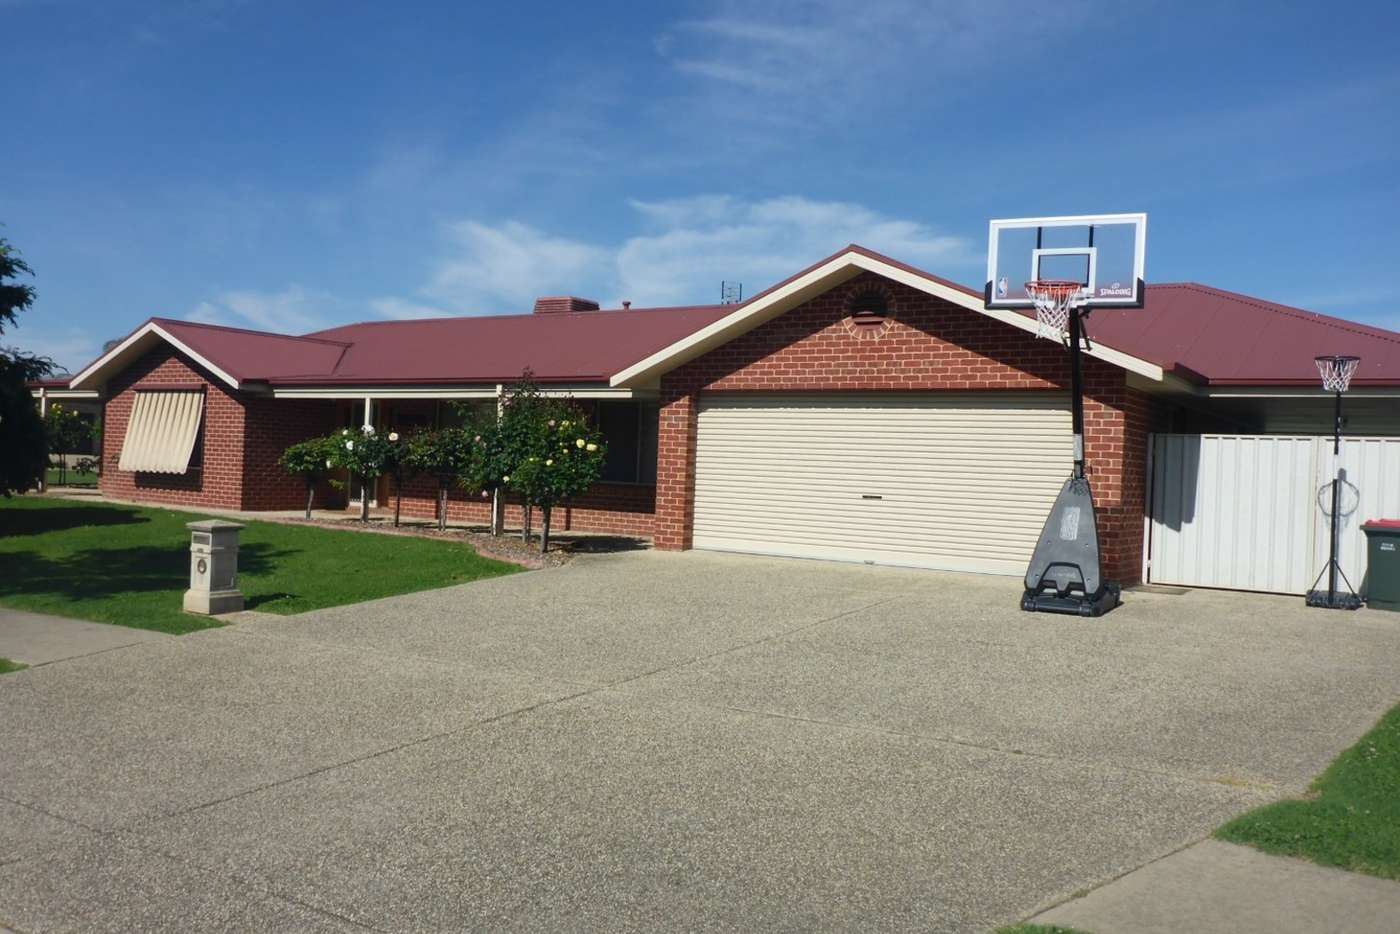 Main view of Homely house listing, 5 Shannon Avenue, Wodonga VIC 3690